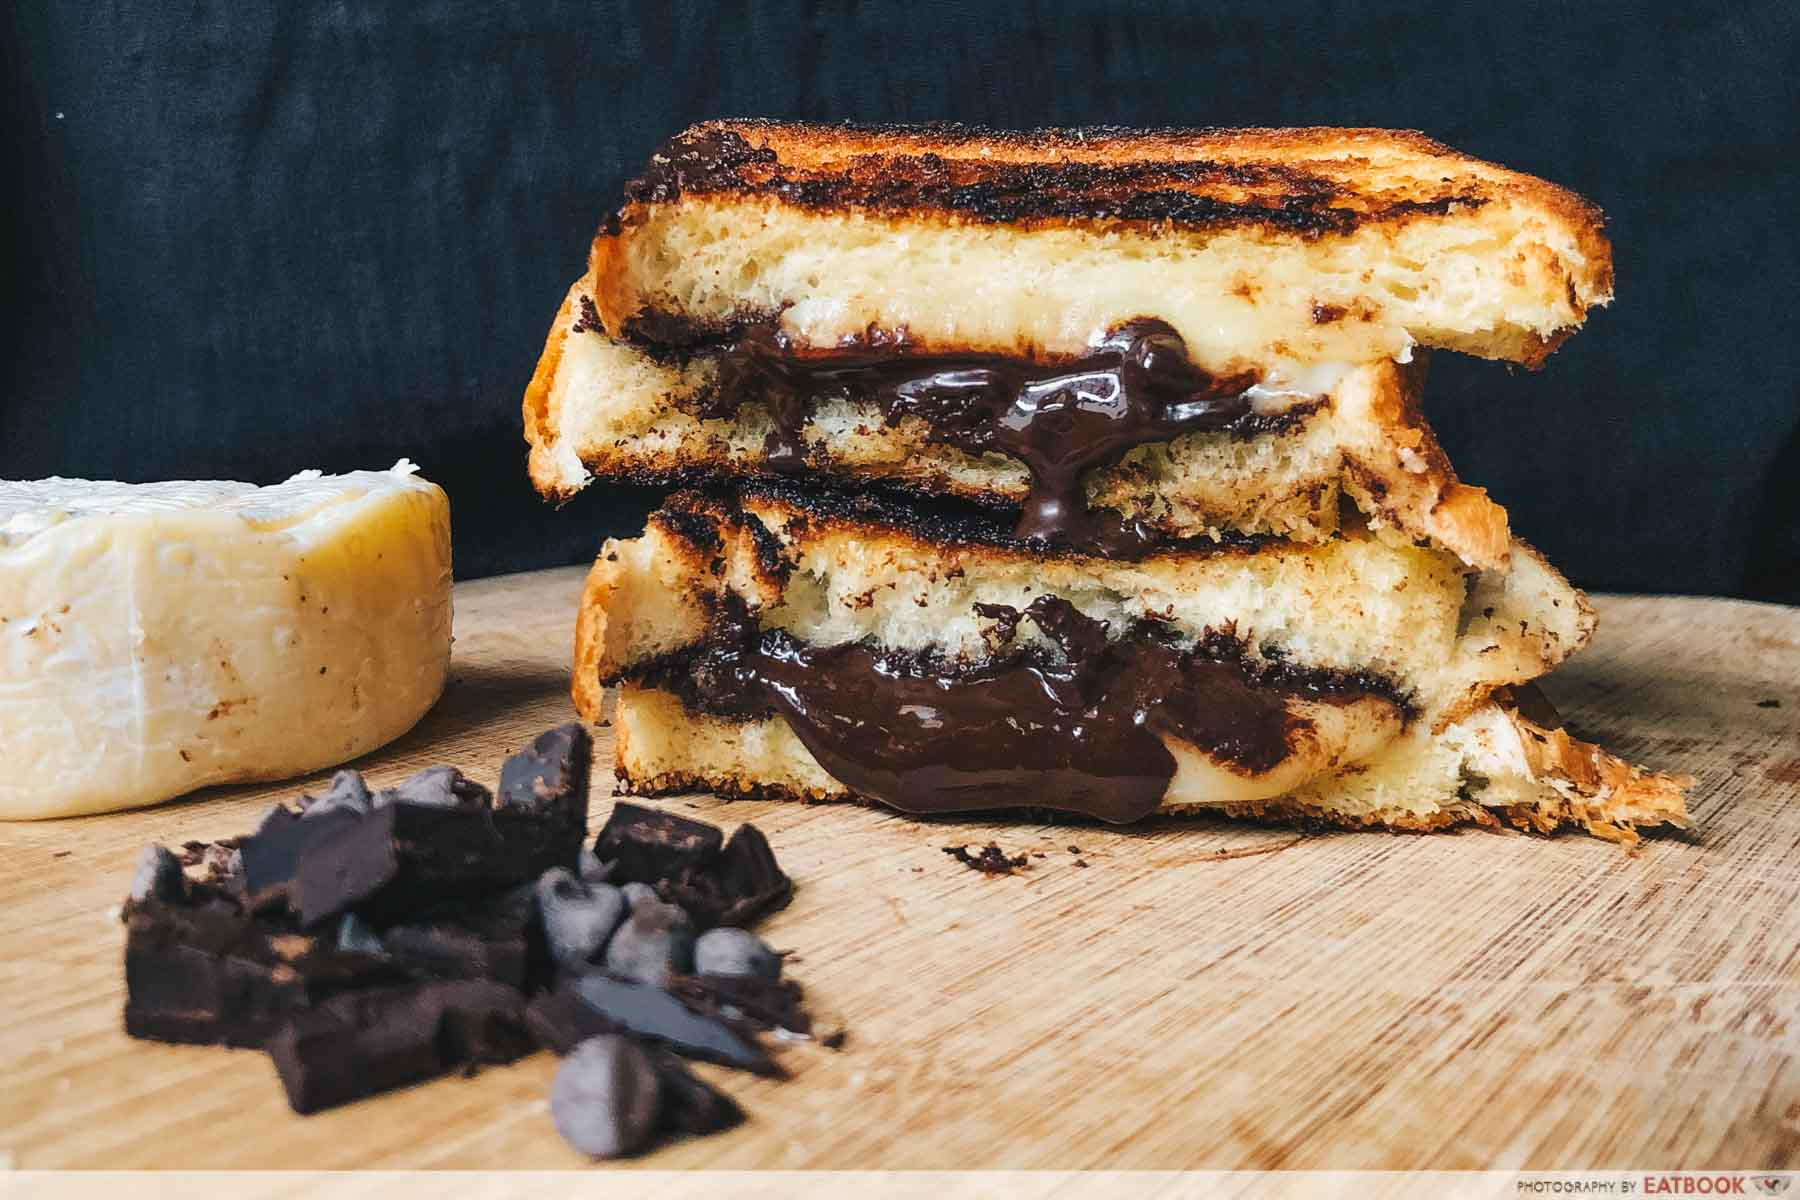 Sandwich Recipes - Dark Chocolate and Brie Grilled Cheese